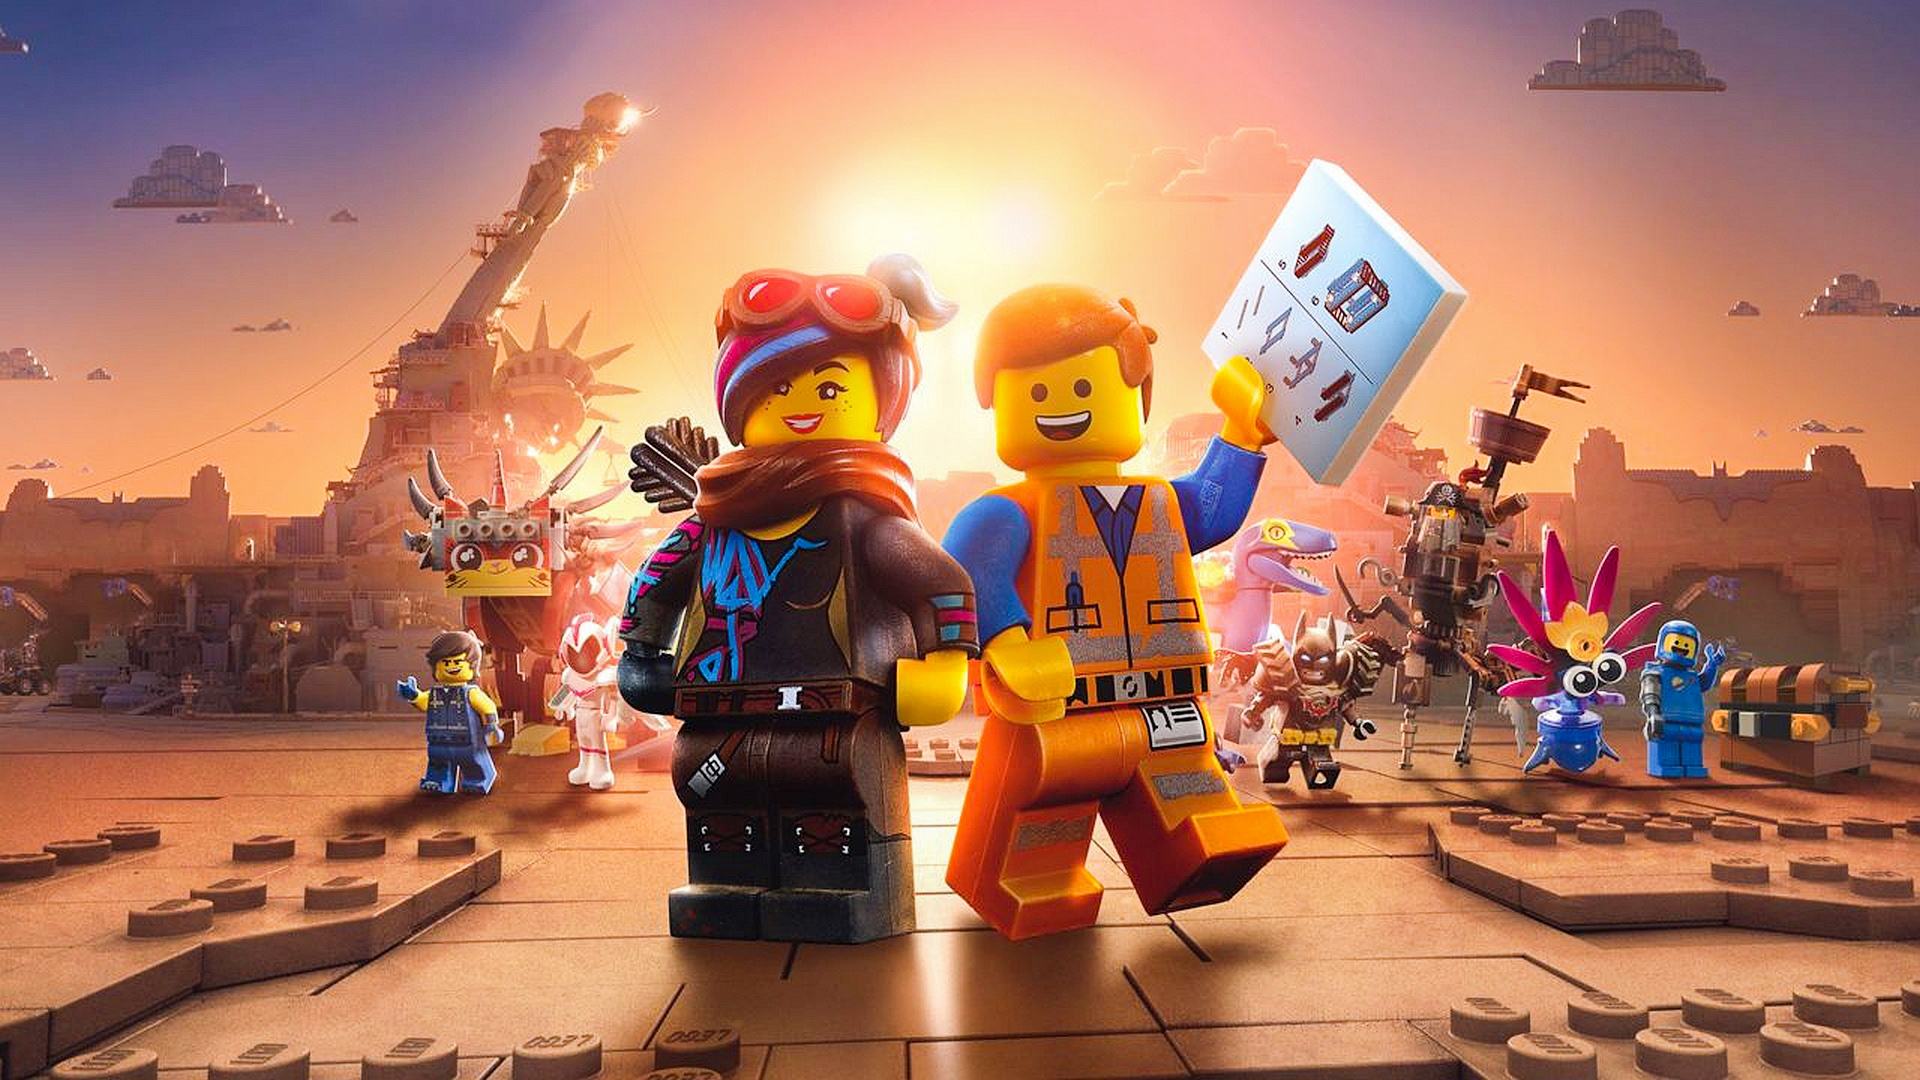 Lego Movie 2 Builds Upon Original Crowd Pleasing Story The Heights